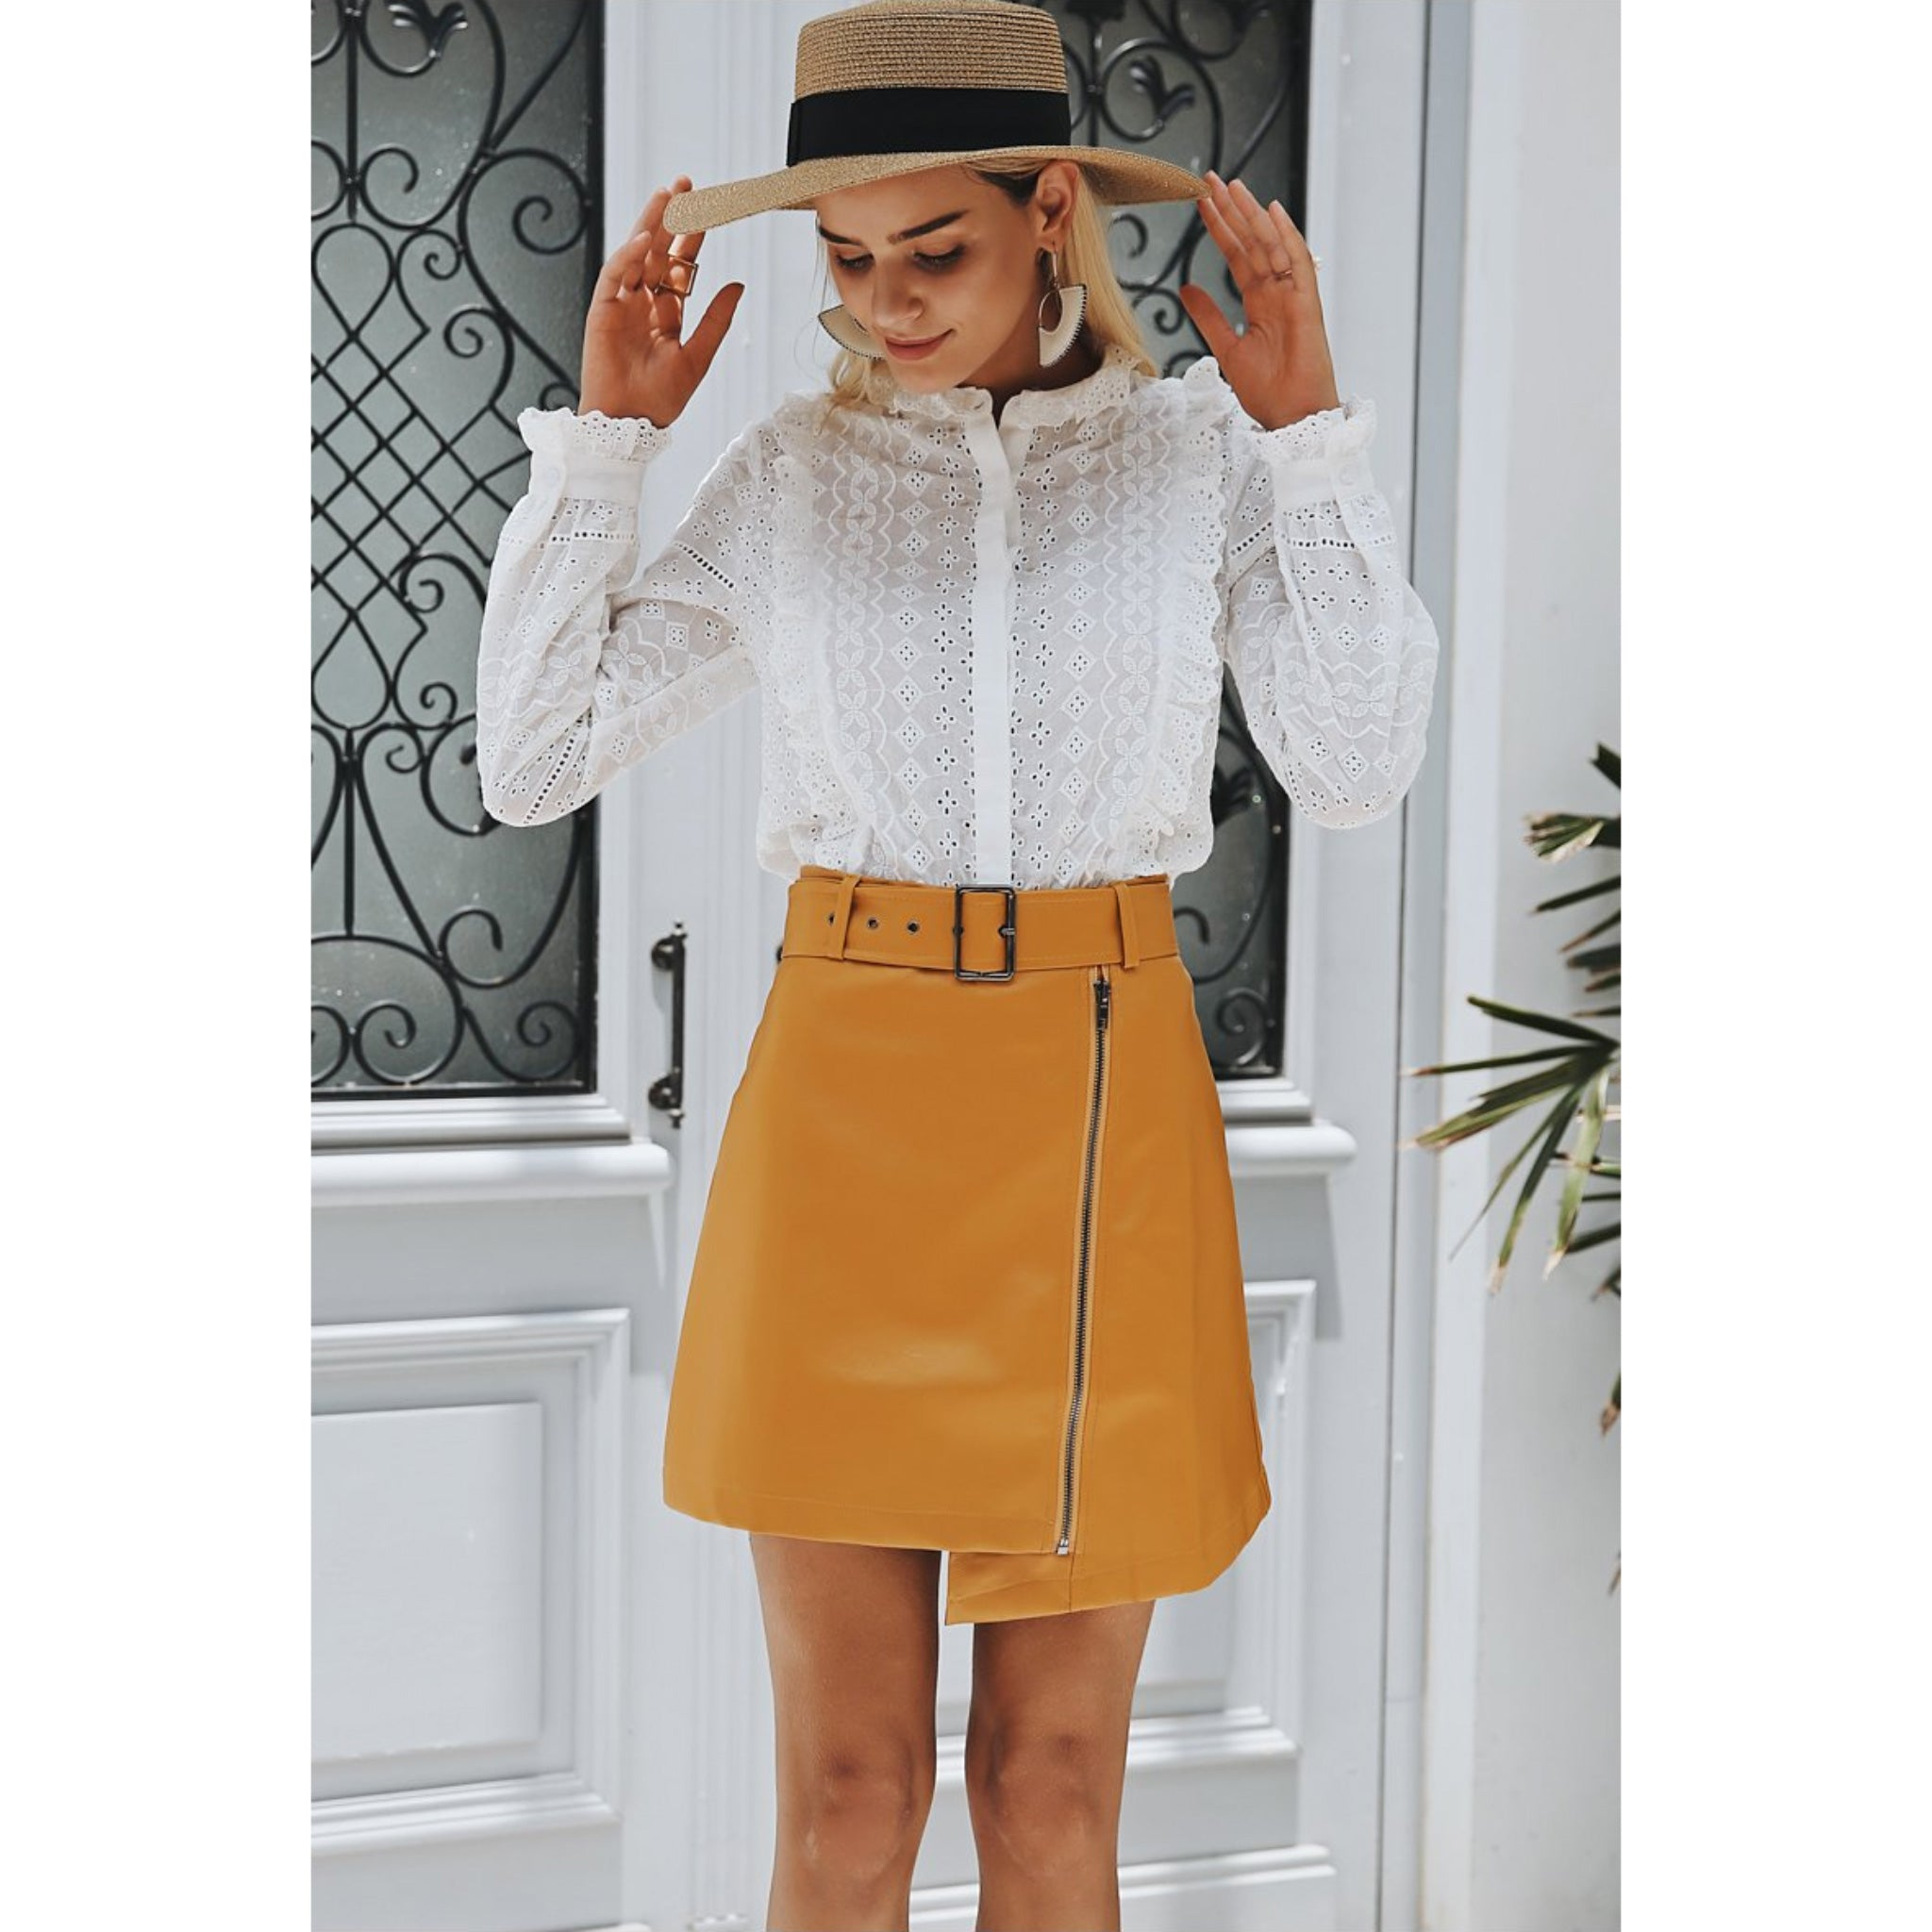 Ruffle Long Sleeve White Pleated Blouse Button Up Lantern Sleeve Shirt for Women